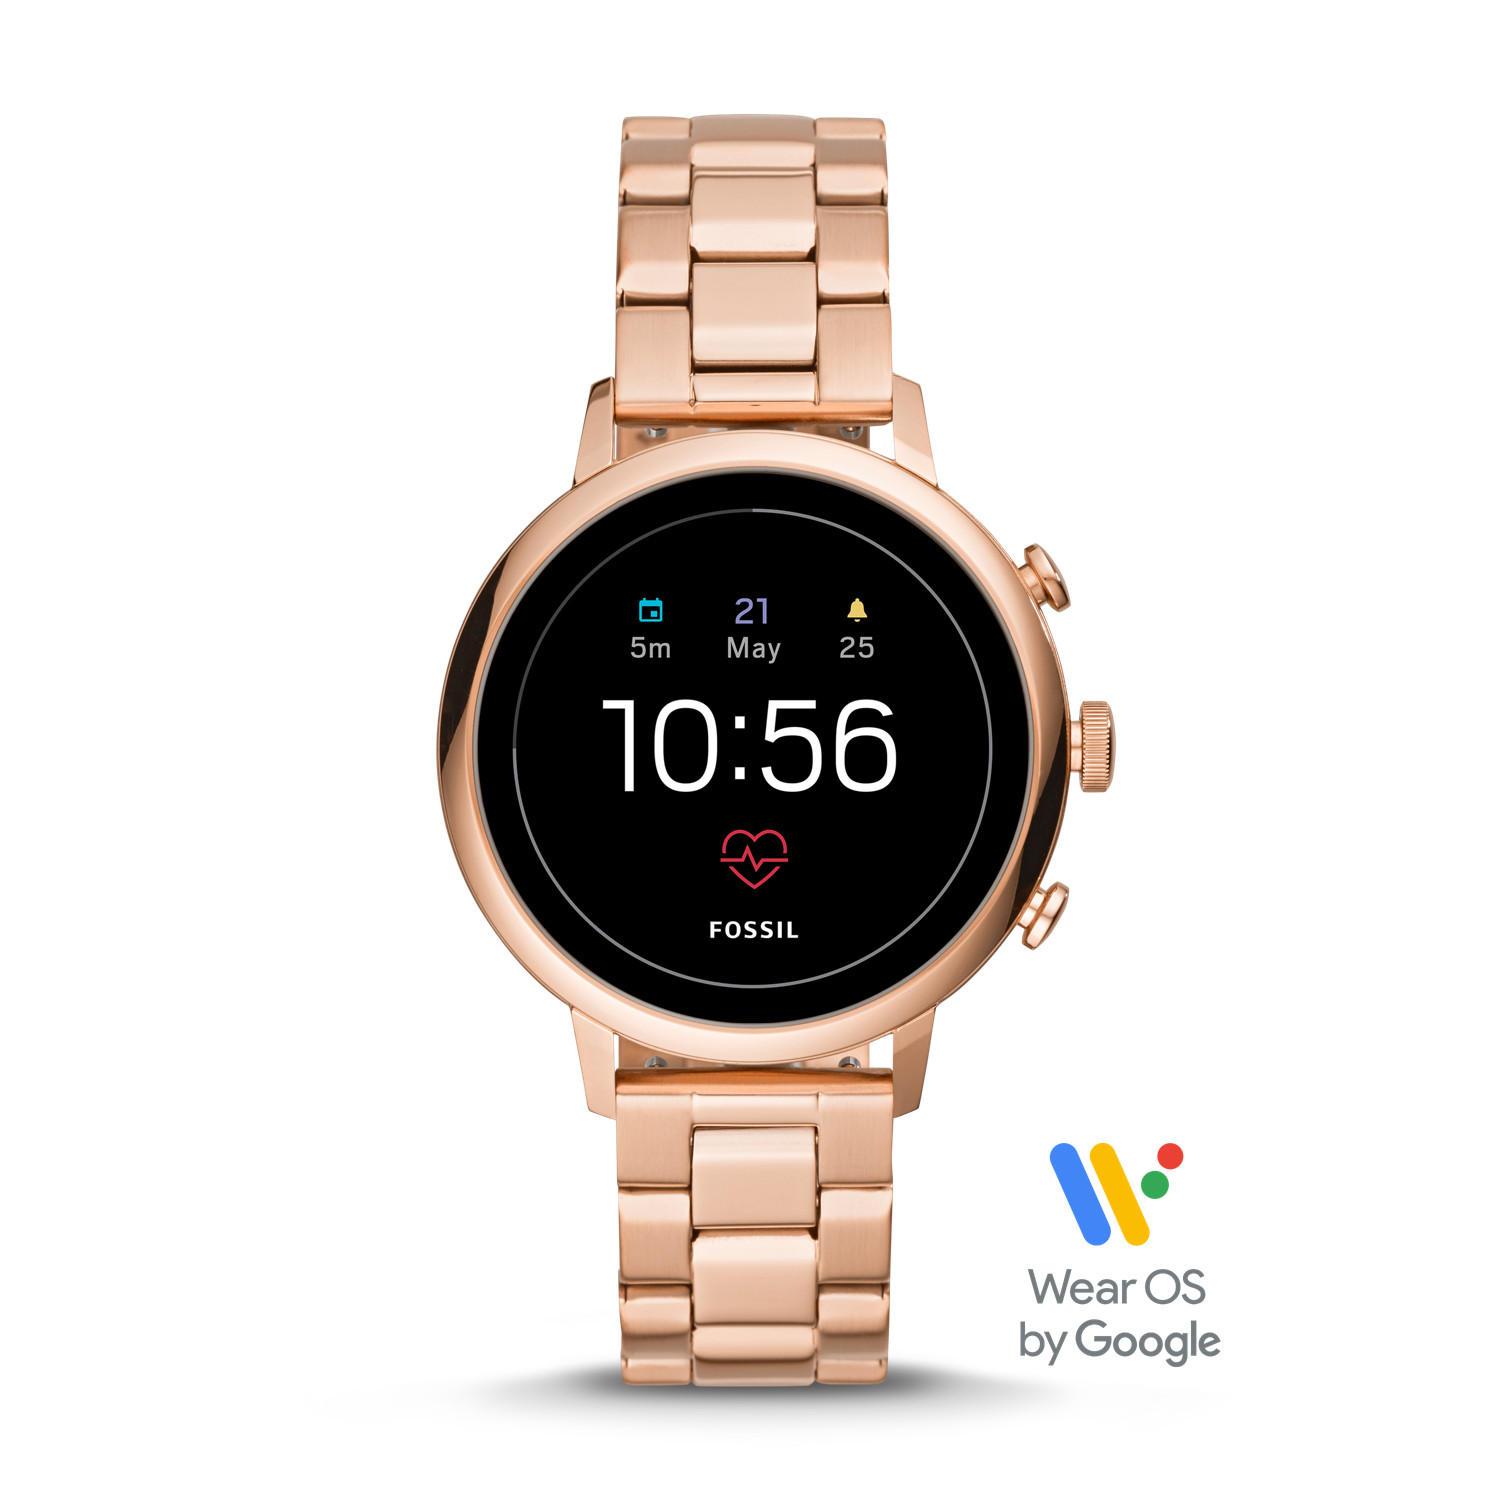 9325c57fc288 Gen 4 Smartwatch - Venture HR Rose Gold-Tone Stainless Steel - Fossil